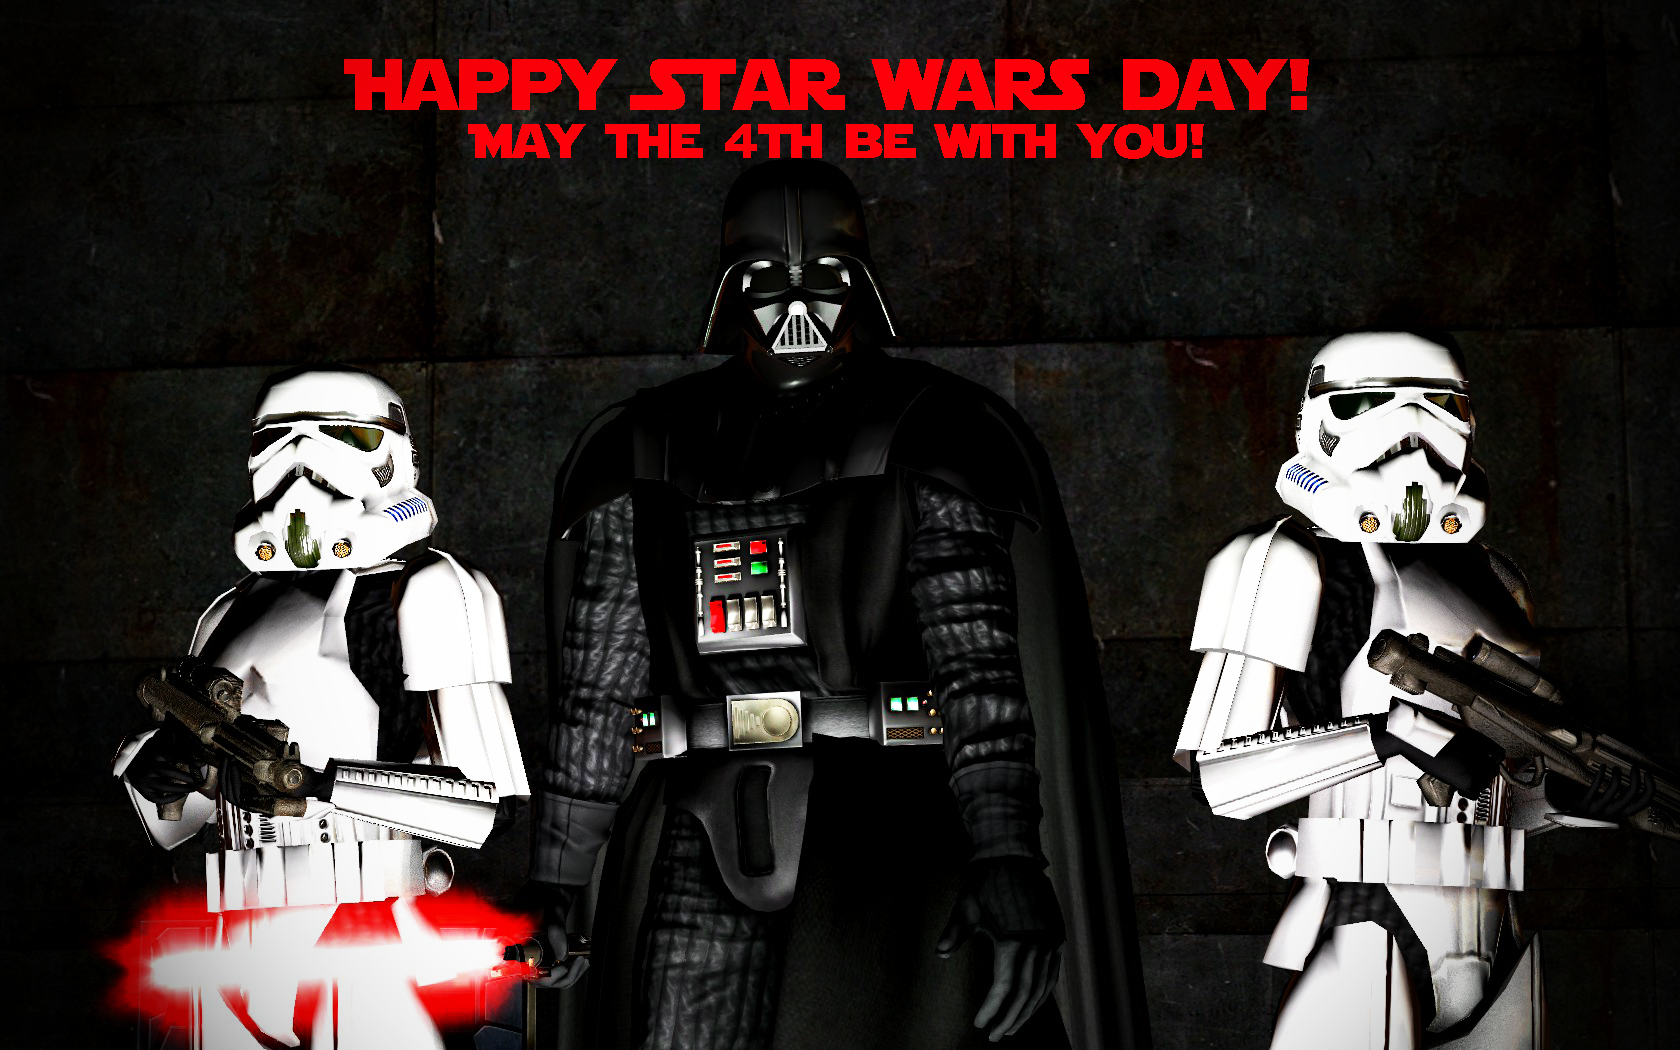 Happy Star Wars Day! by benoski